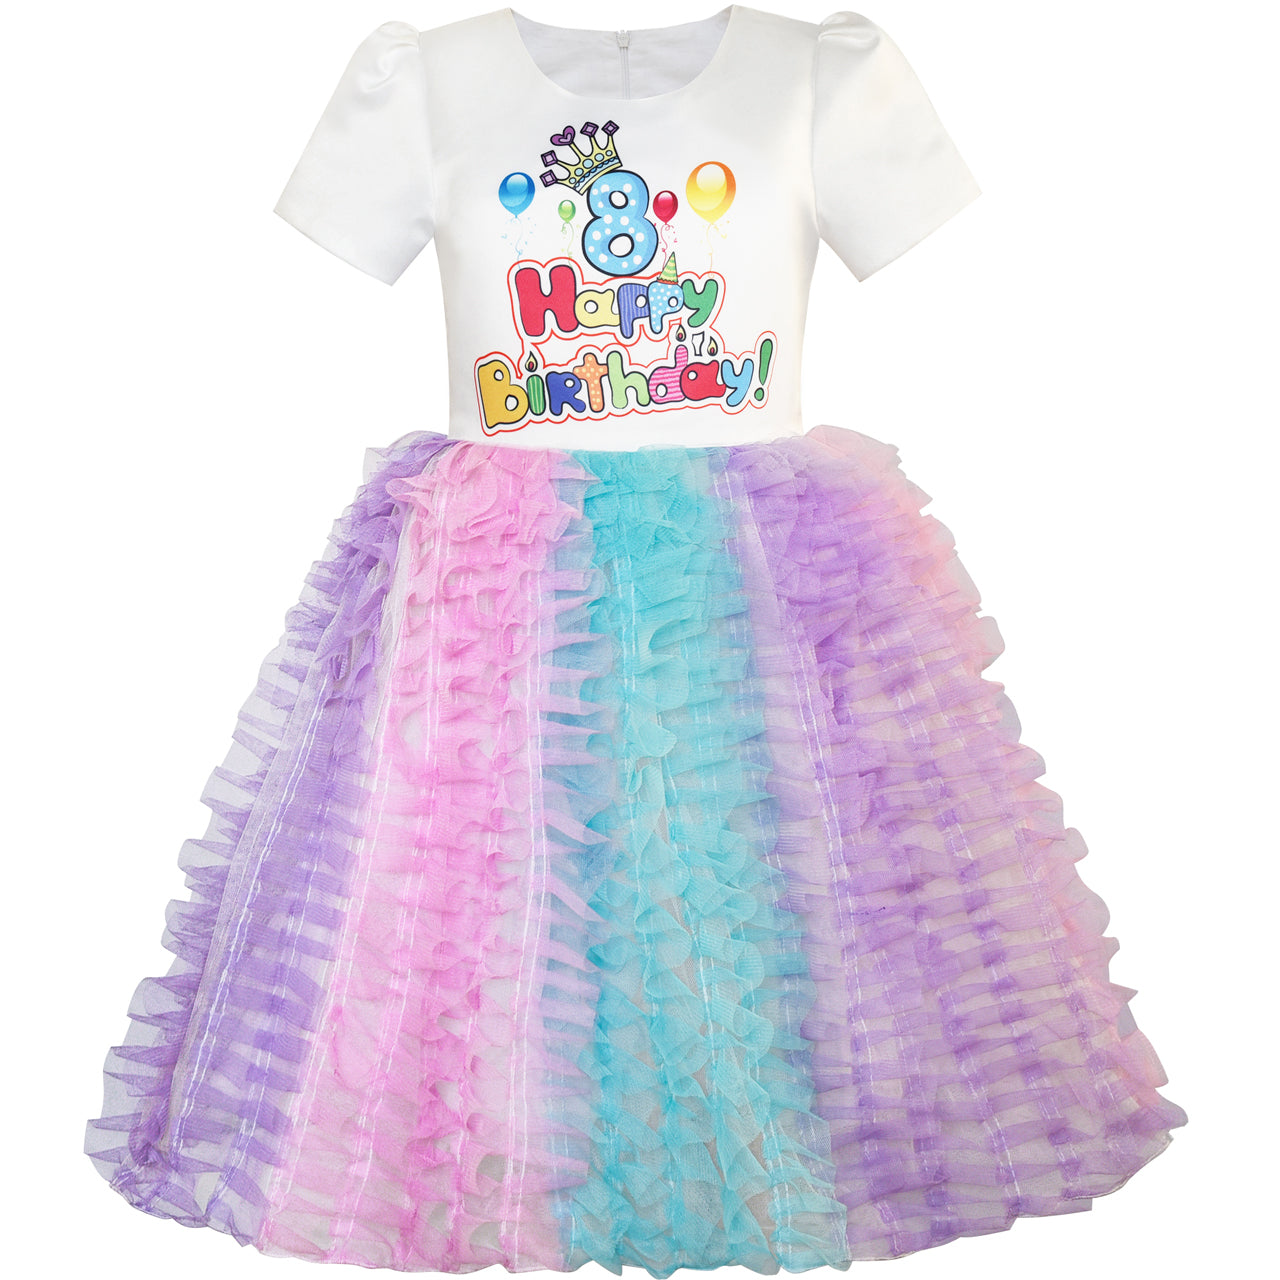 Party Pageant Dresses | Sunny Fashion Girls Party and Pageant Dresses